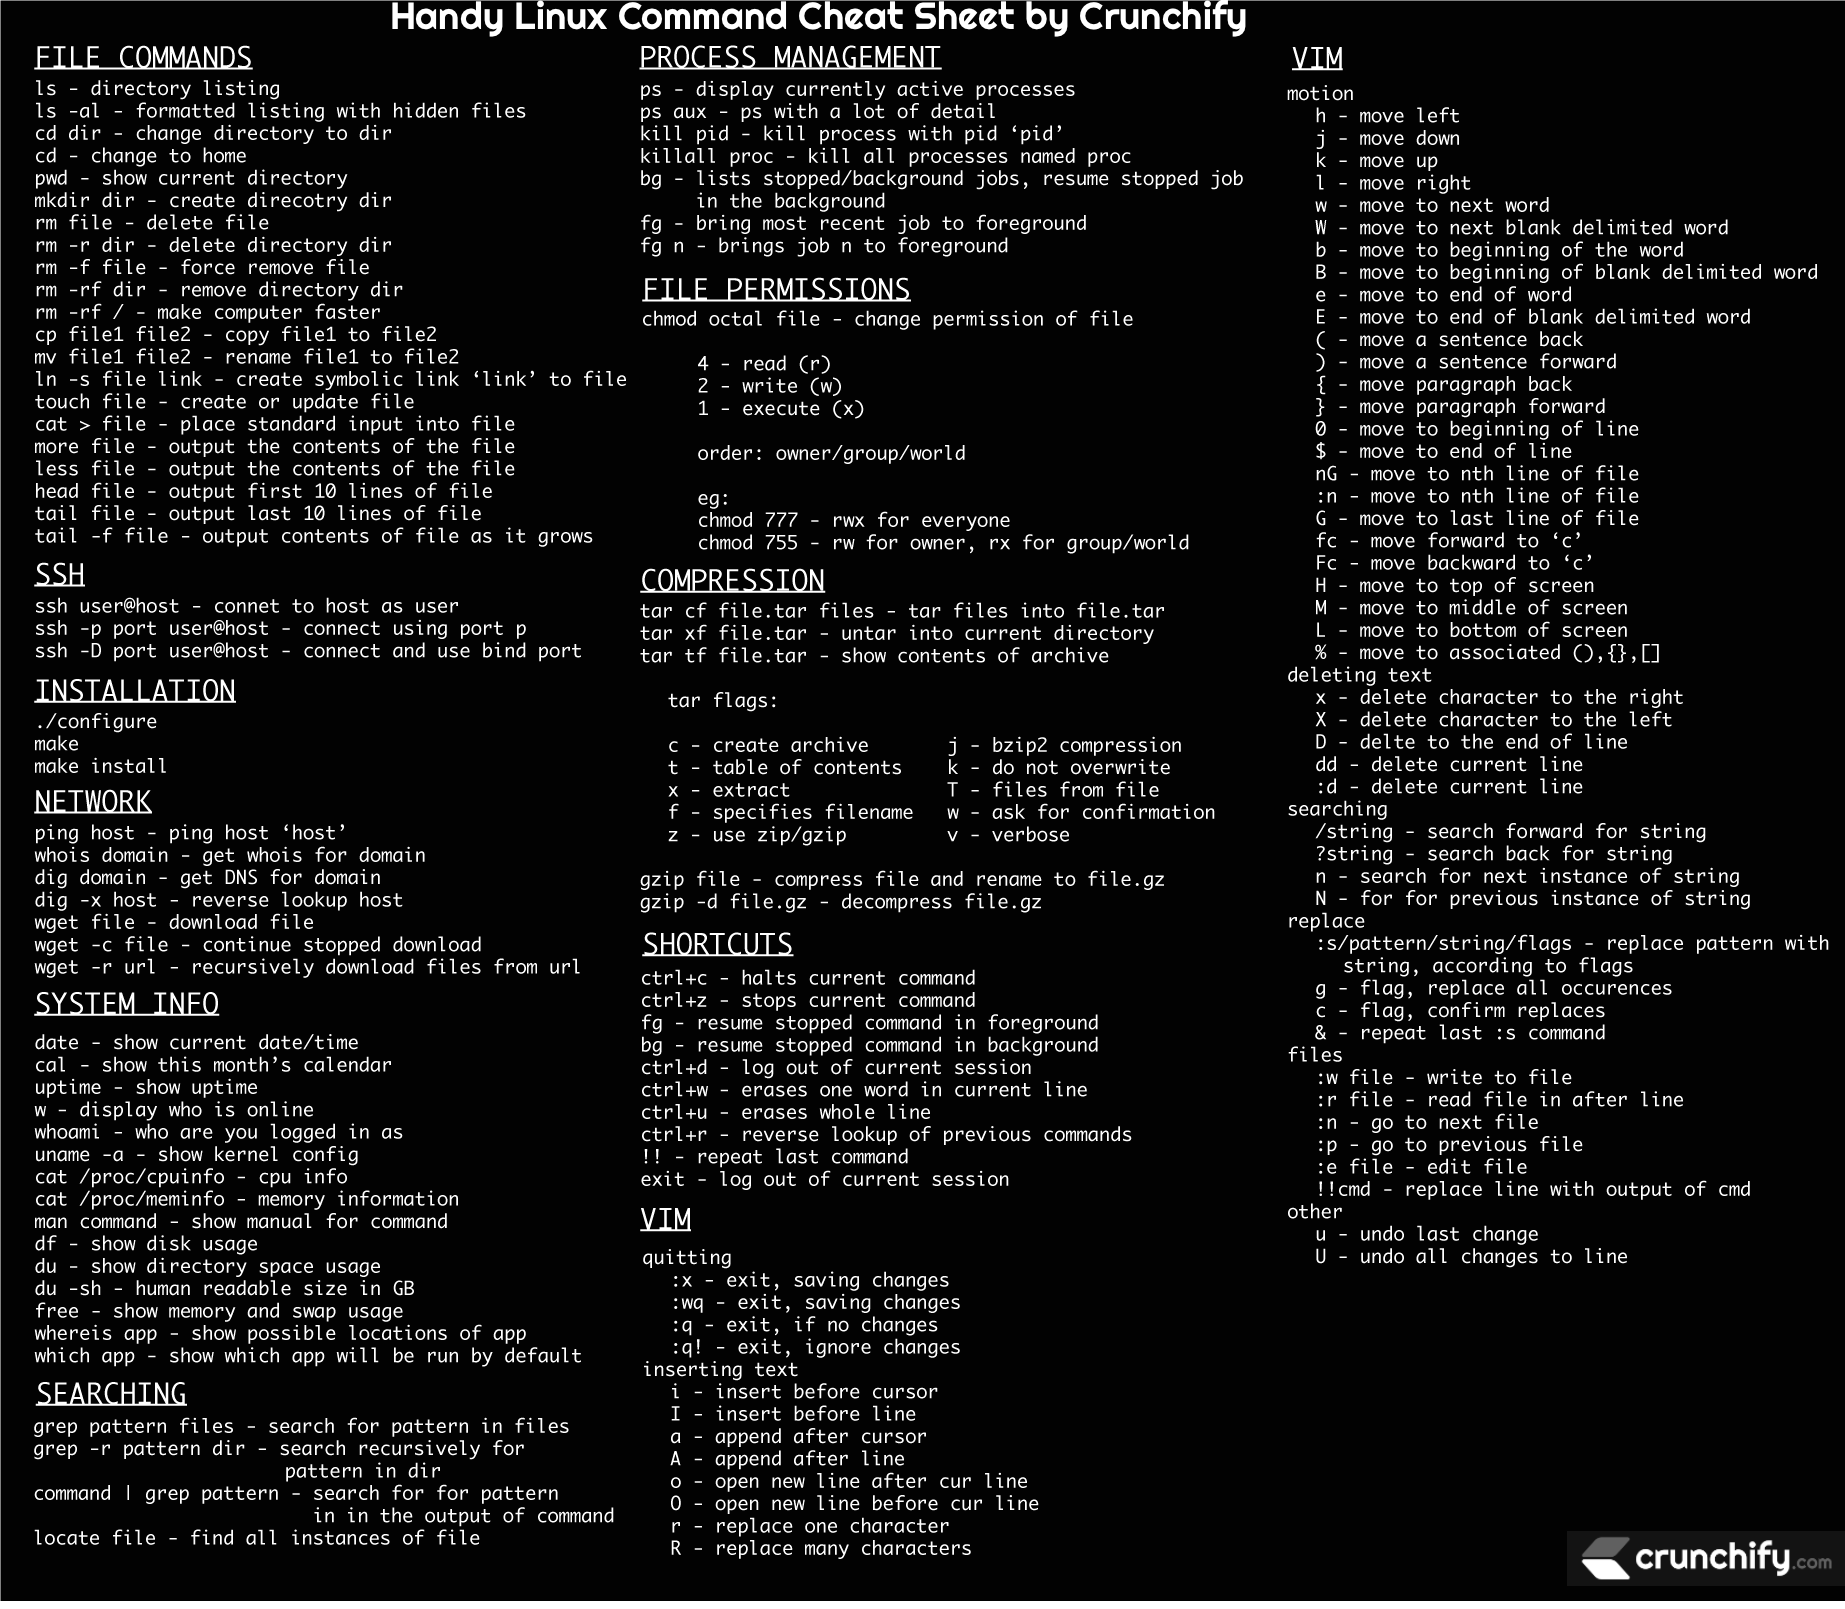 Handy Checklist for Linux Commands